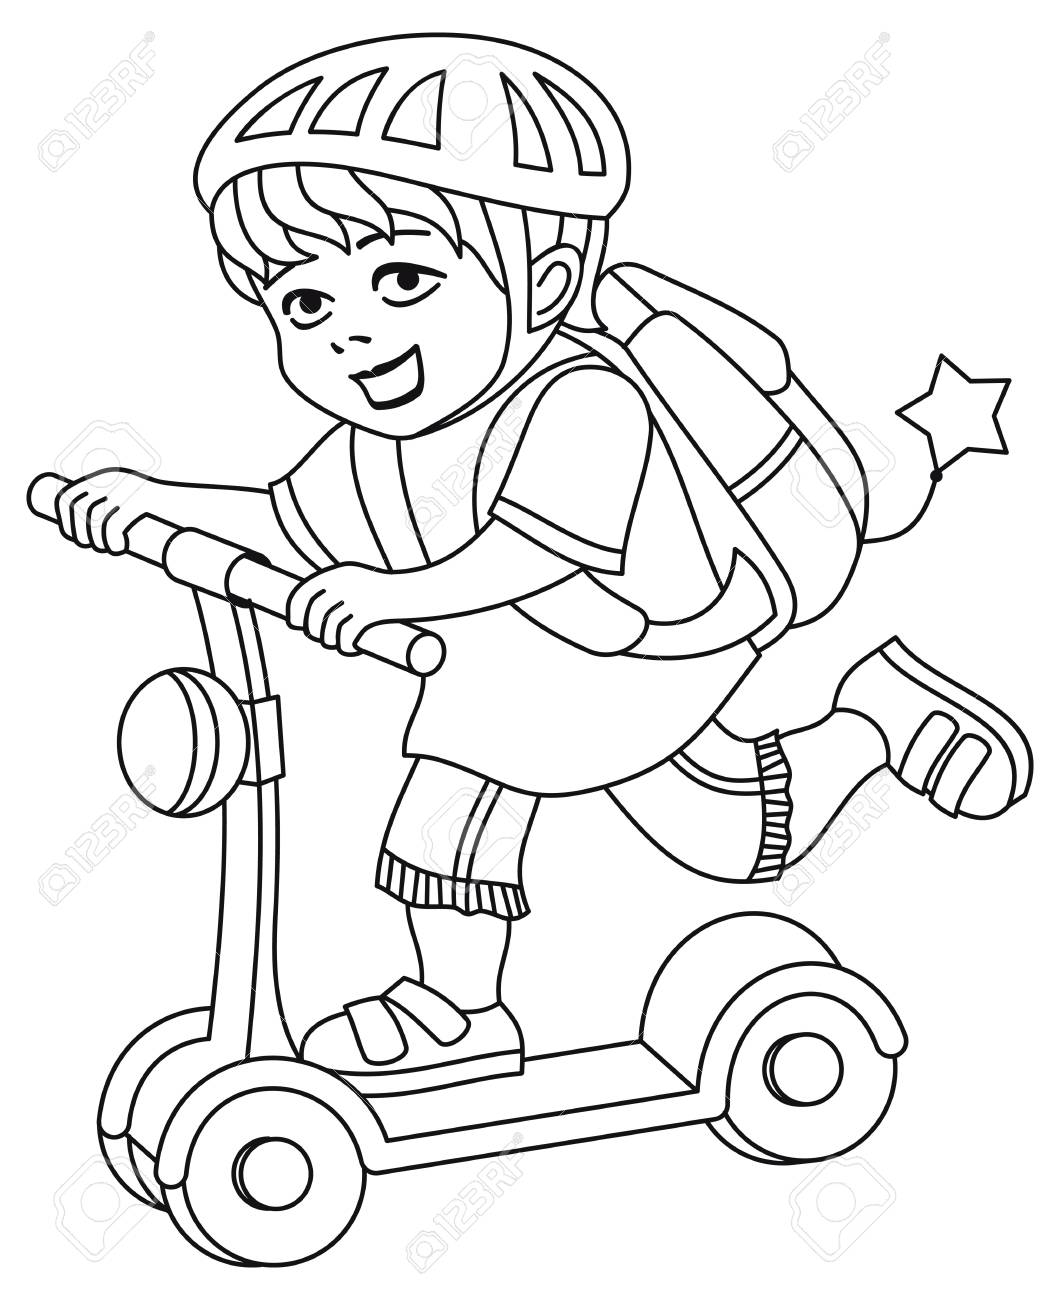 A kid in a bike helmet and with a backpack on his back rides..